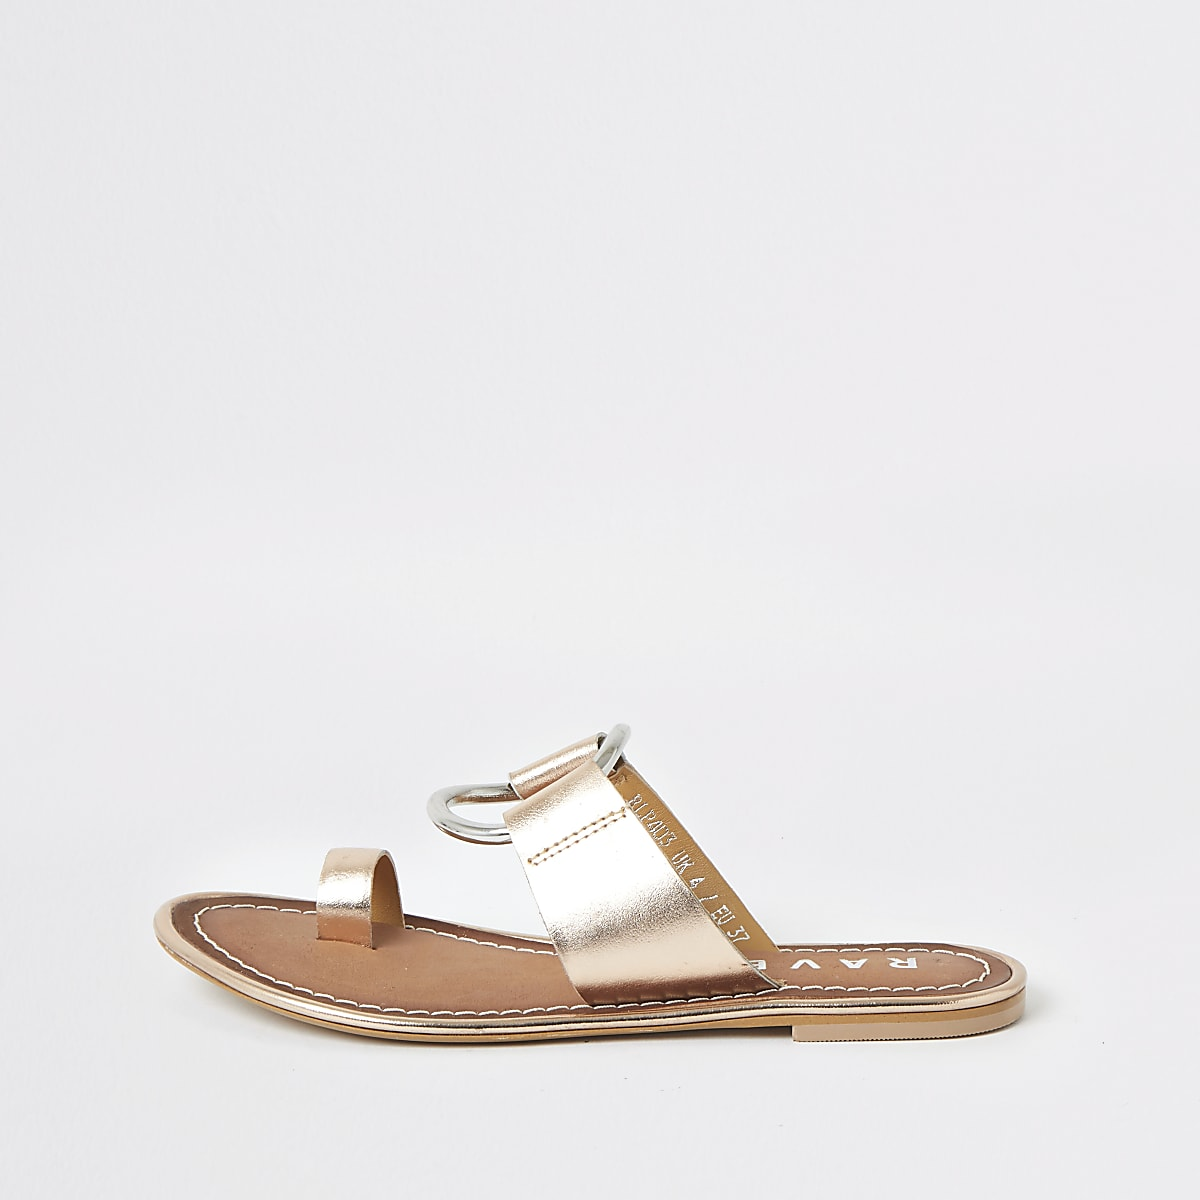 Ravel gold metallic toe ring sandals